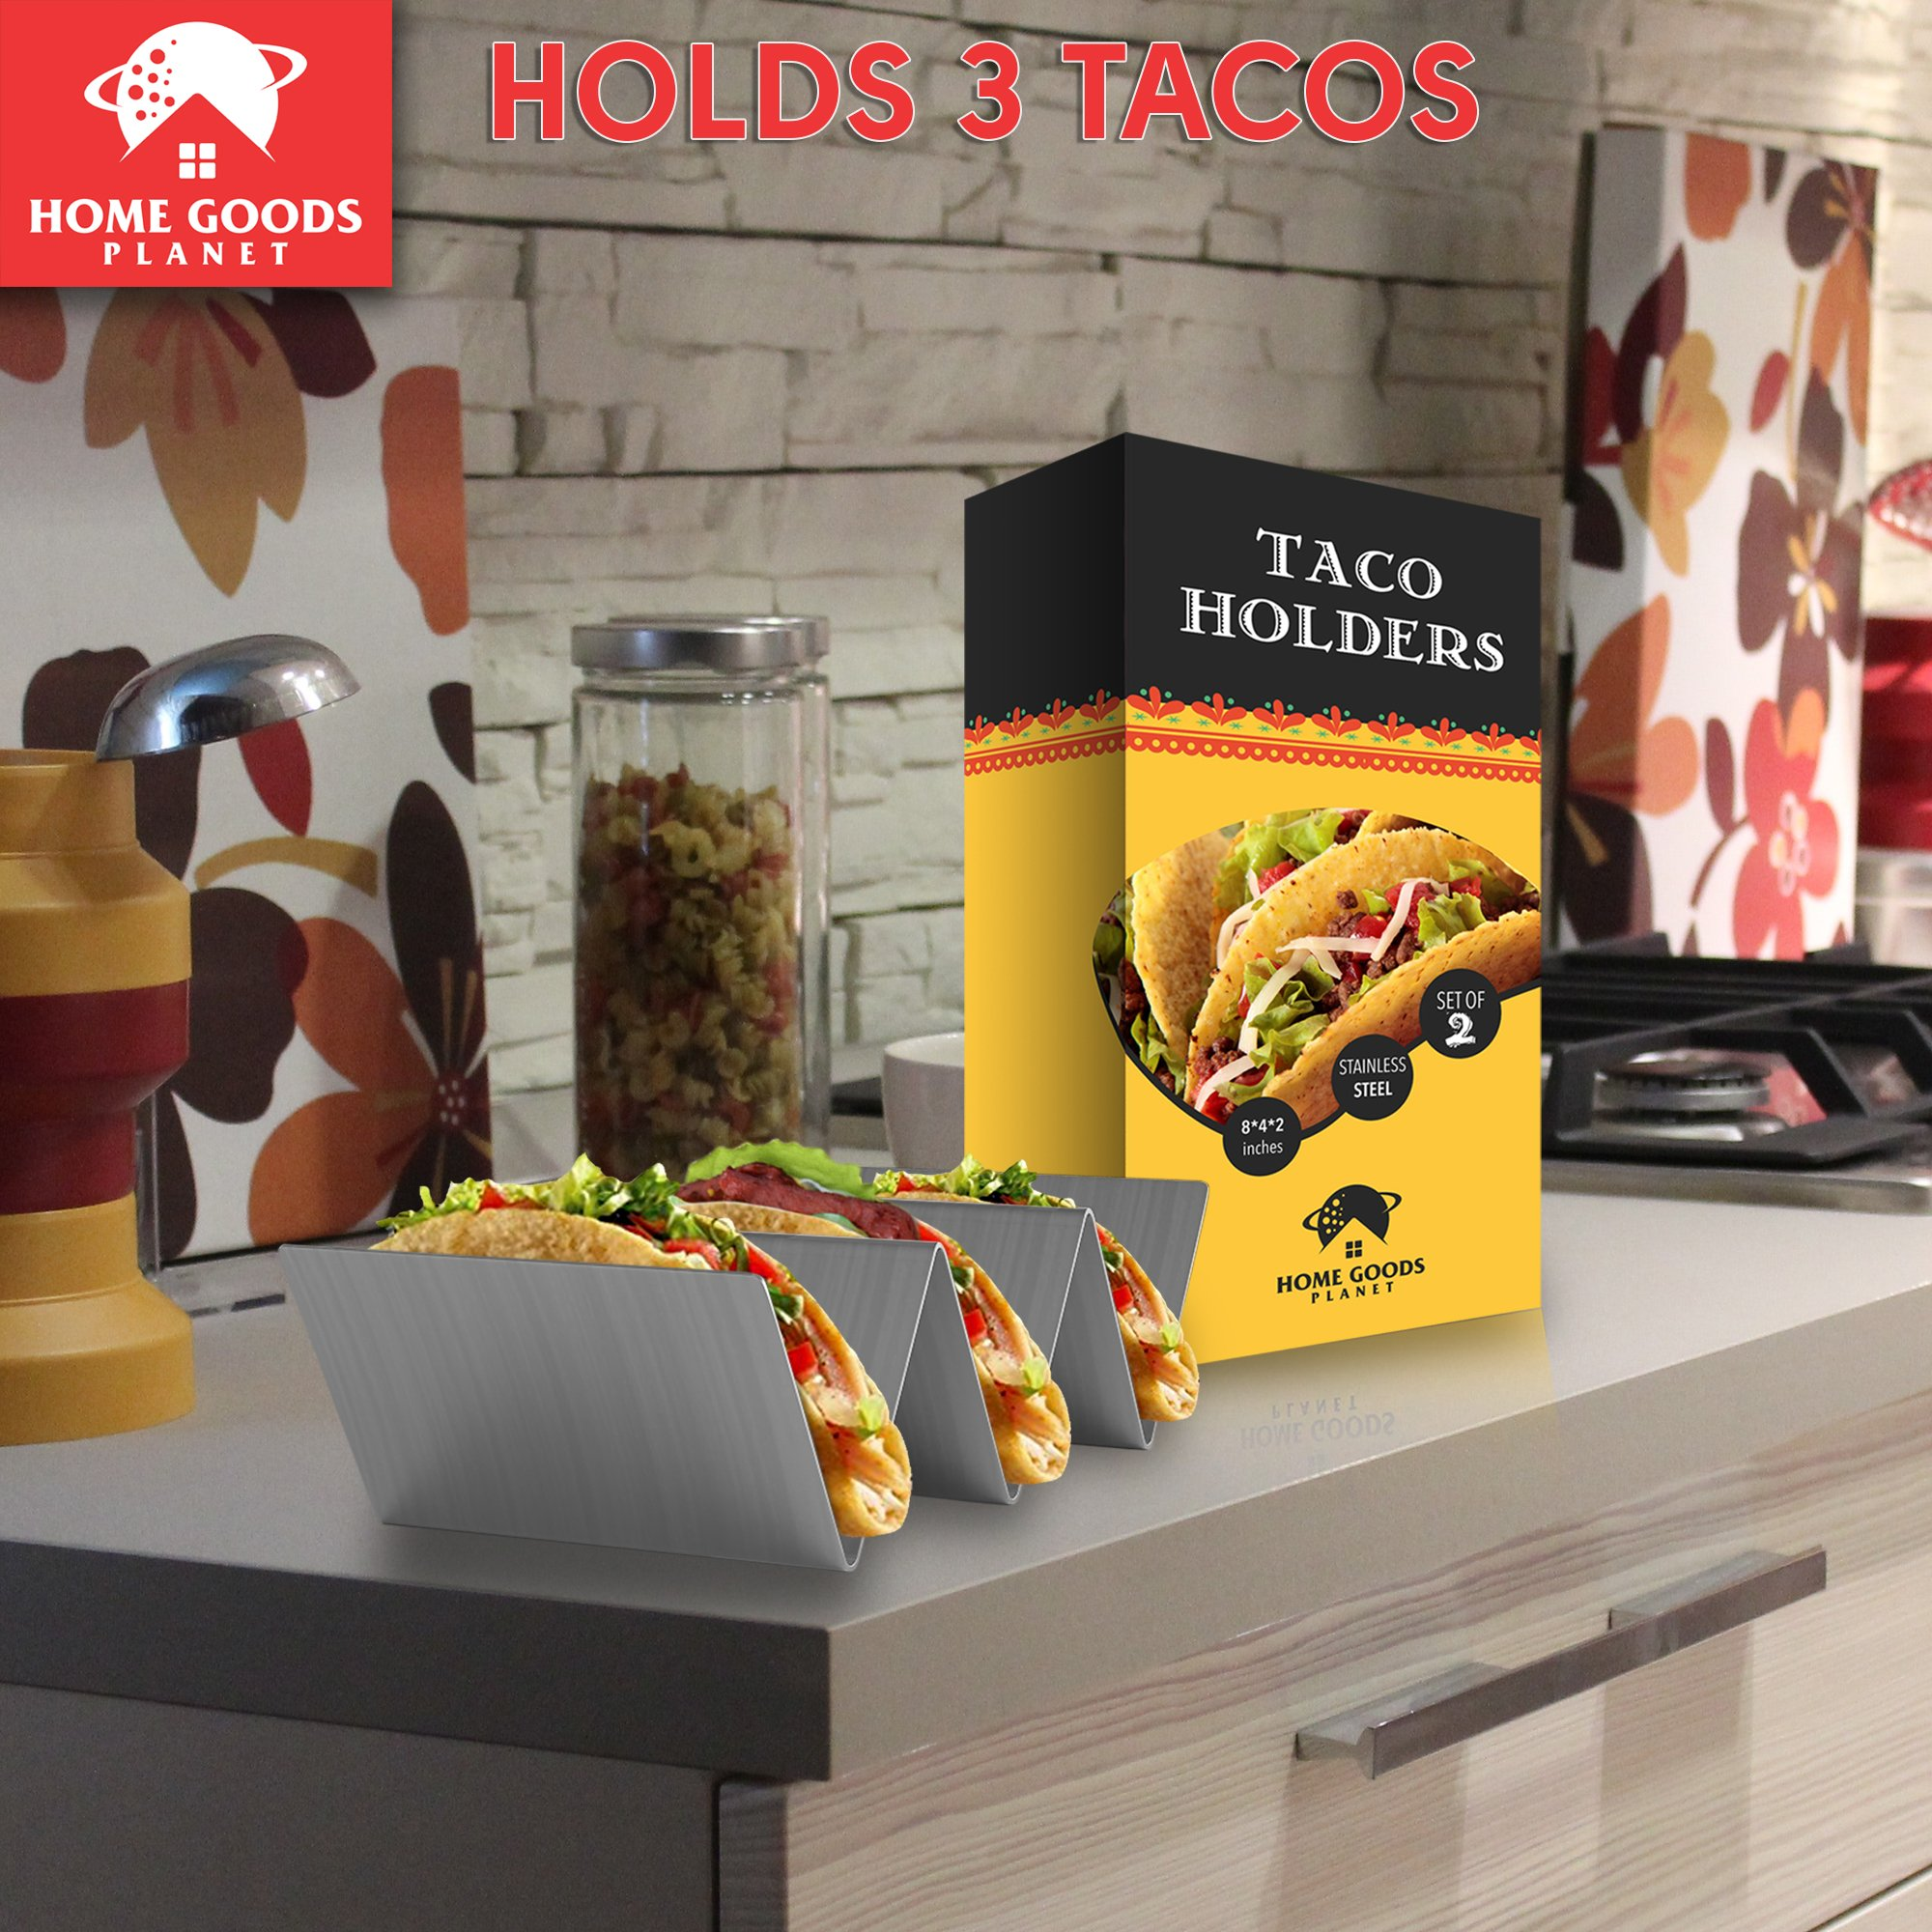 Taco Holder - Set of 2 Shell Racks - Stainless Steel Durable Taco Stand Tray - Ideal for Hard or Soft Shell Tacos - Oven & Dishwasher Safe Tacos Serving Tray or Taco Platter - Includes Recipe e-book by Home Goods Planet (Image #3)